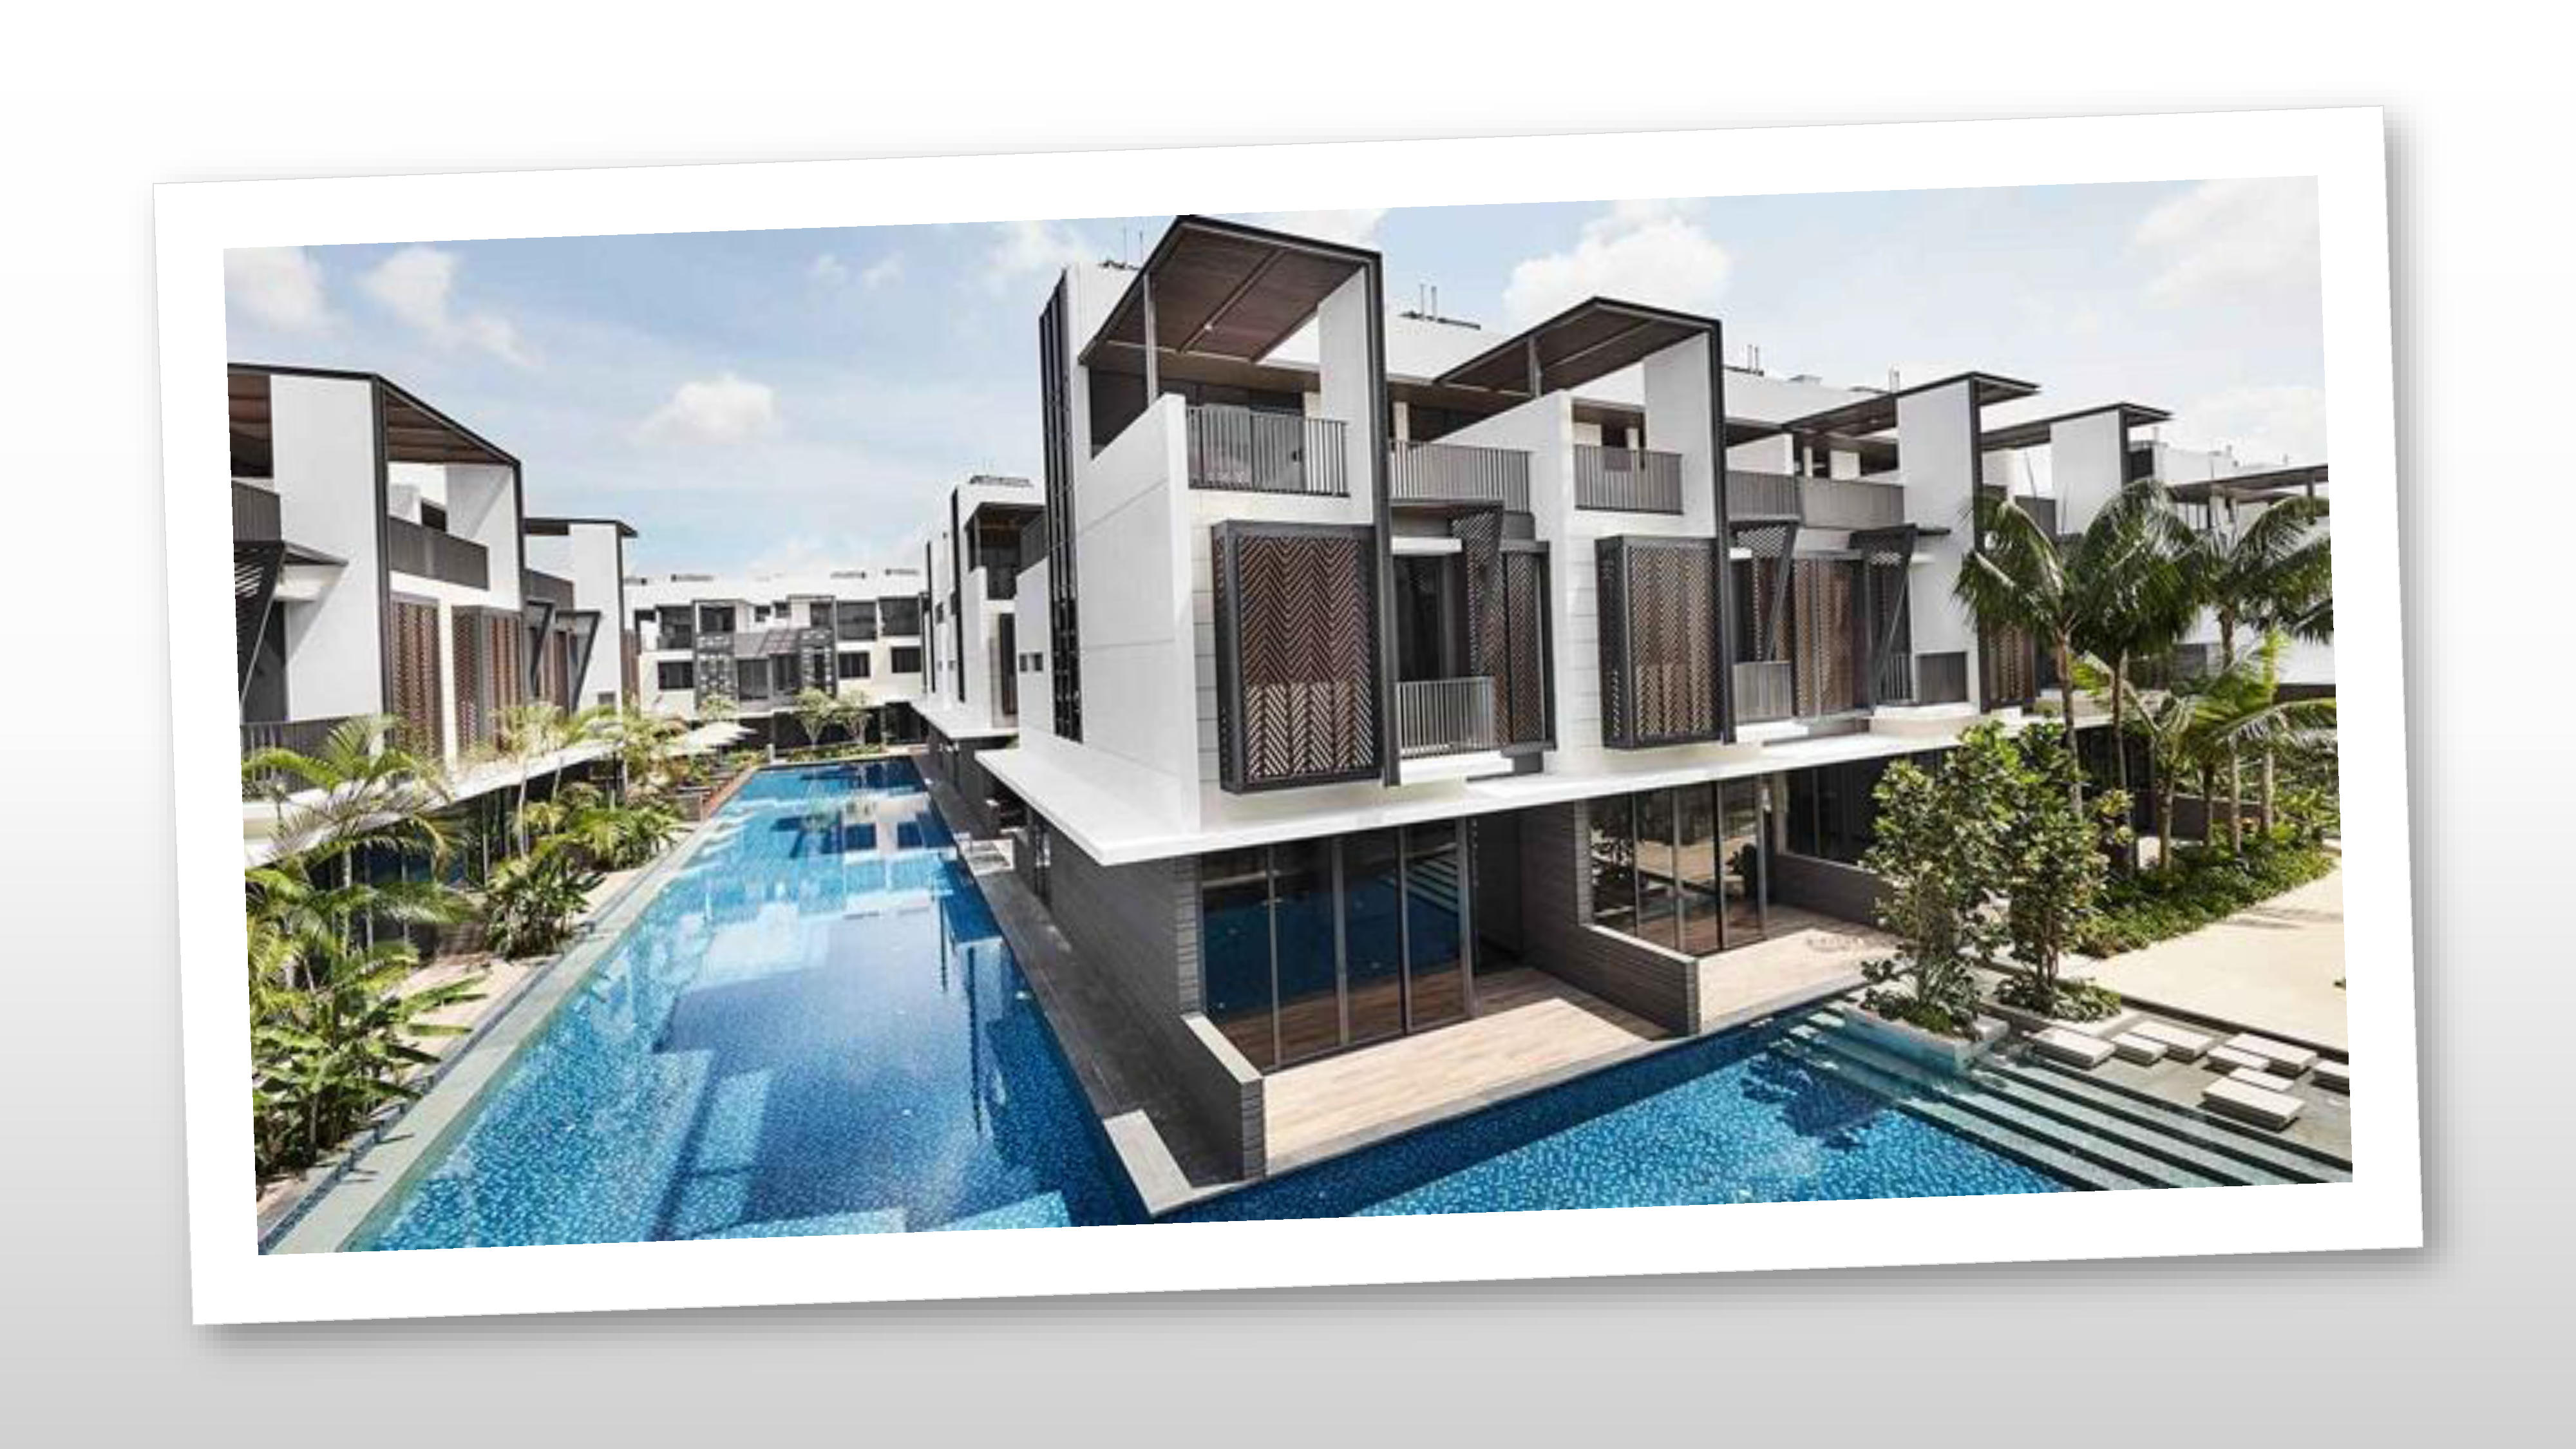 ALANA THE MOST AFFORDABLE TERRACE HOUSE WITH PSF LESS THAN $1000